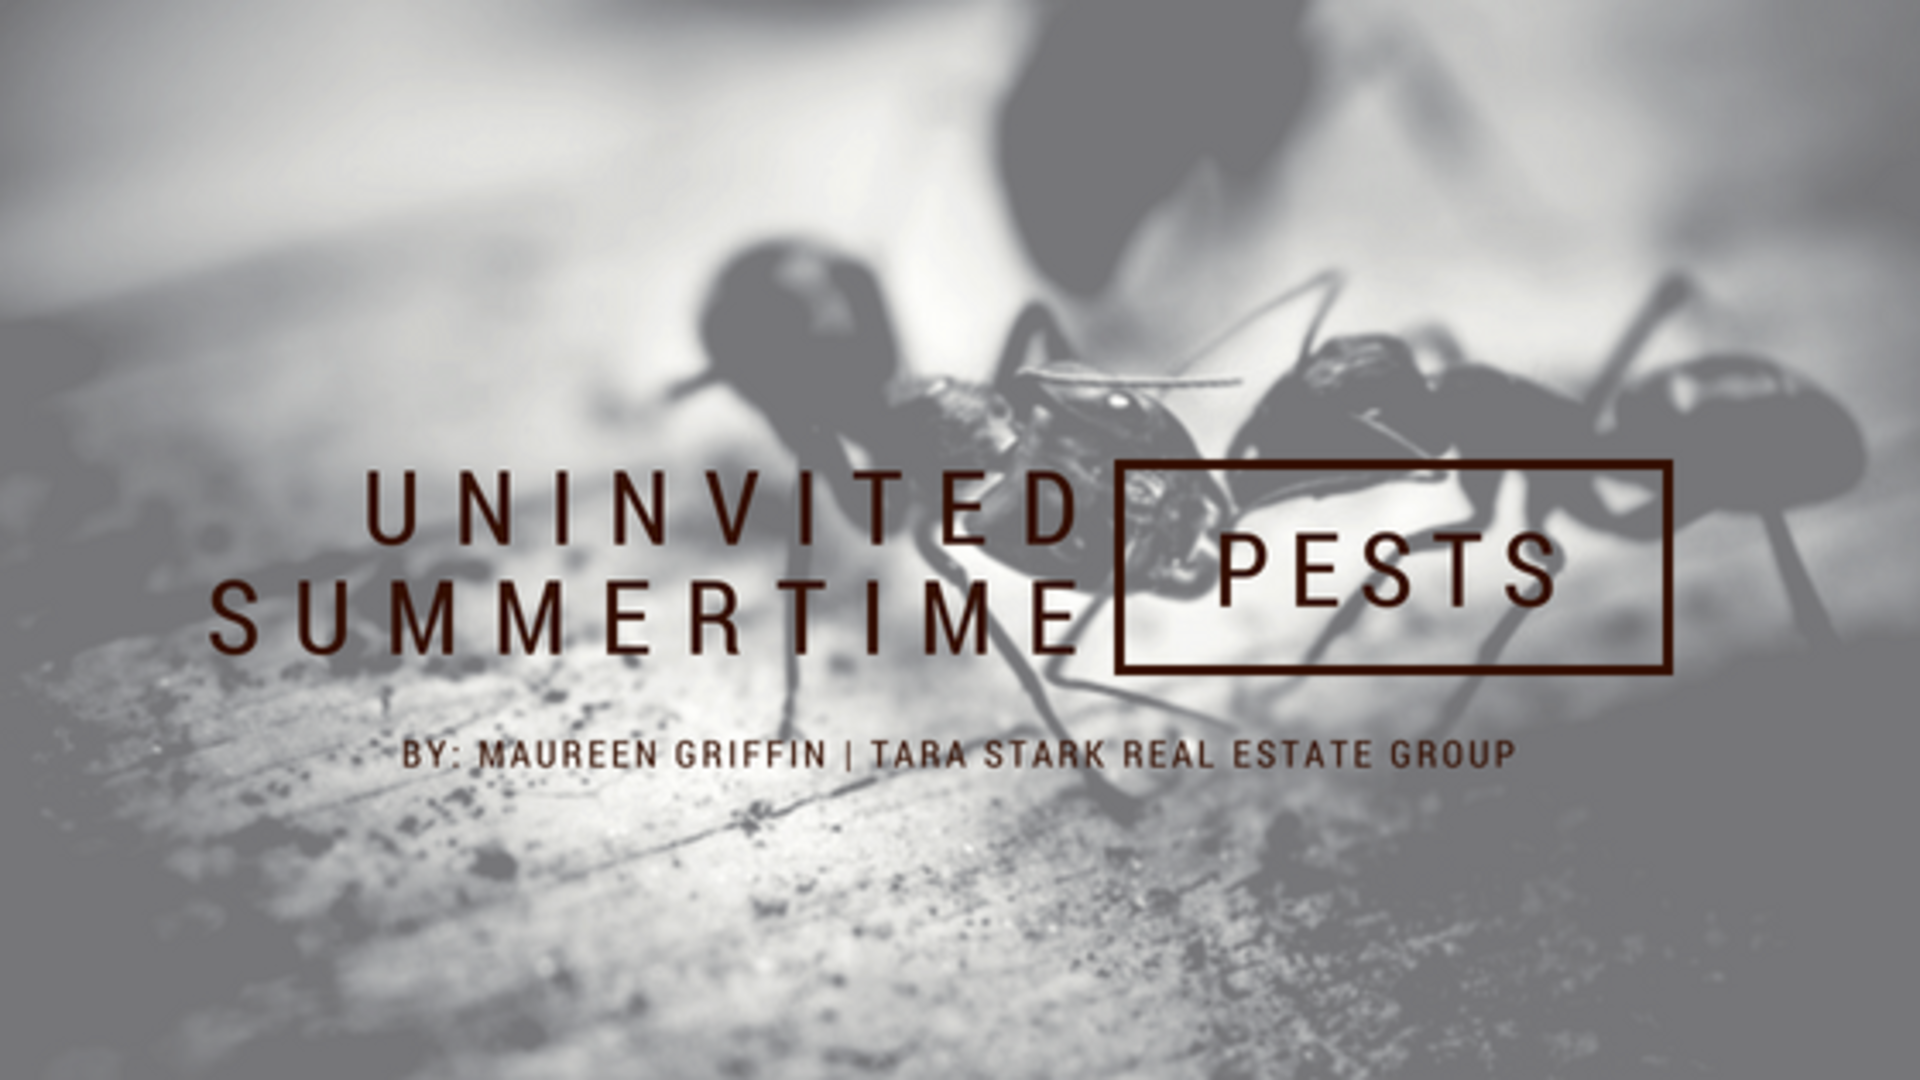 Uninvited Summertime Pests